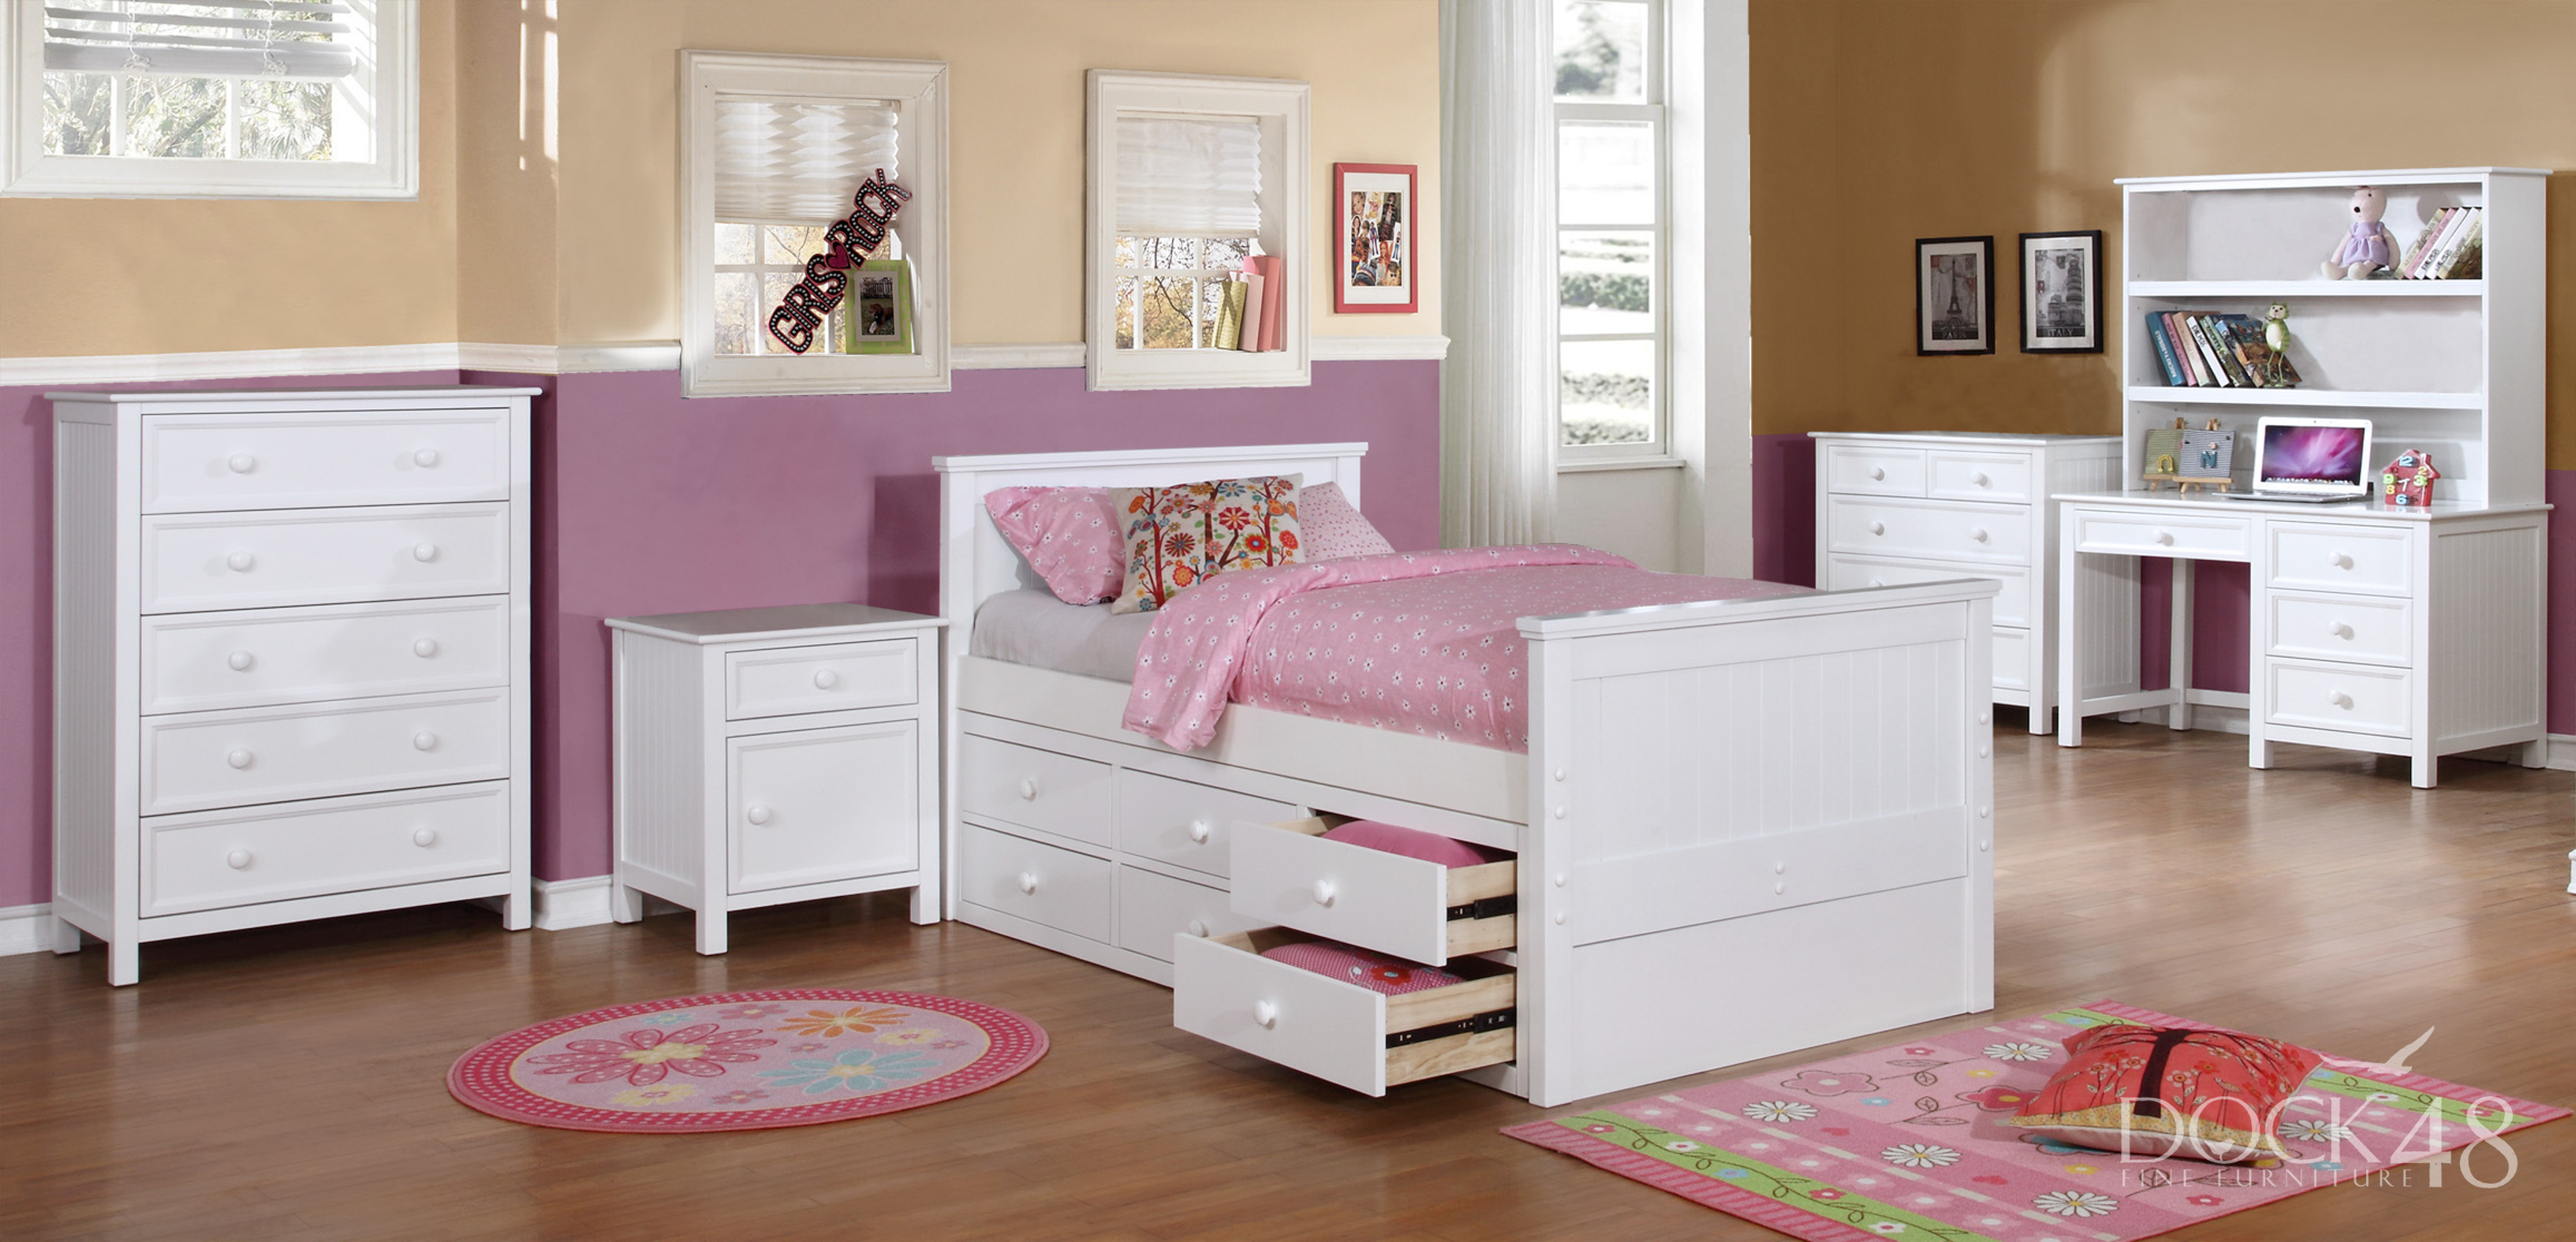 Beadboard Twin with Summerlin Collection and Modesty Panel White